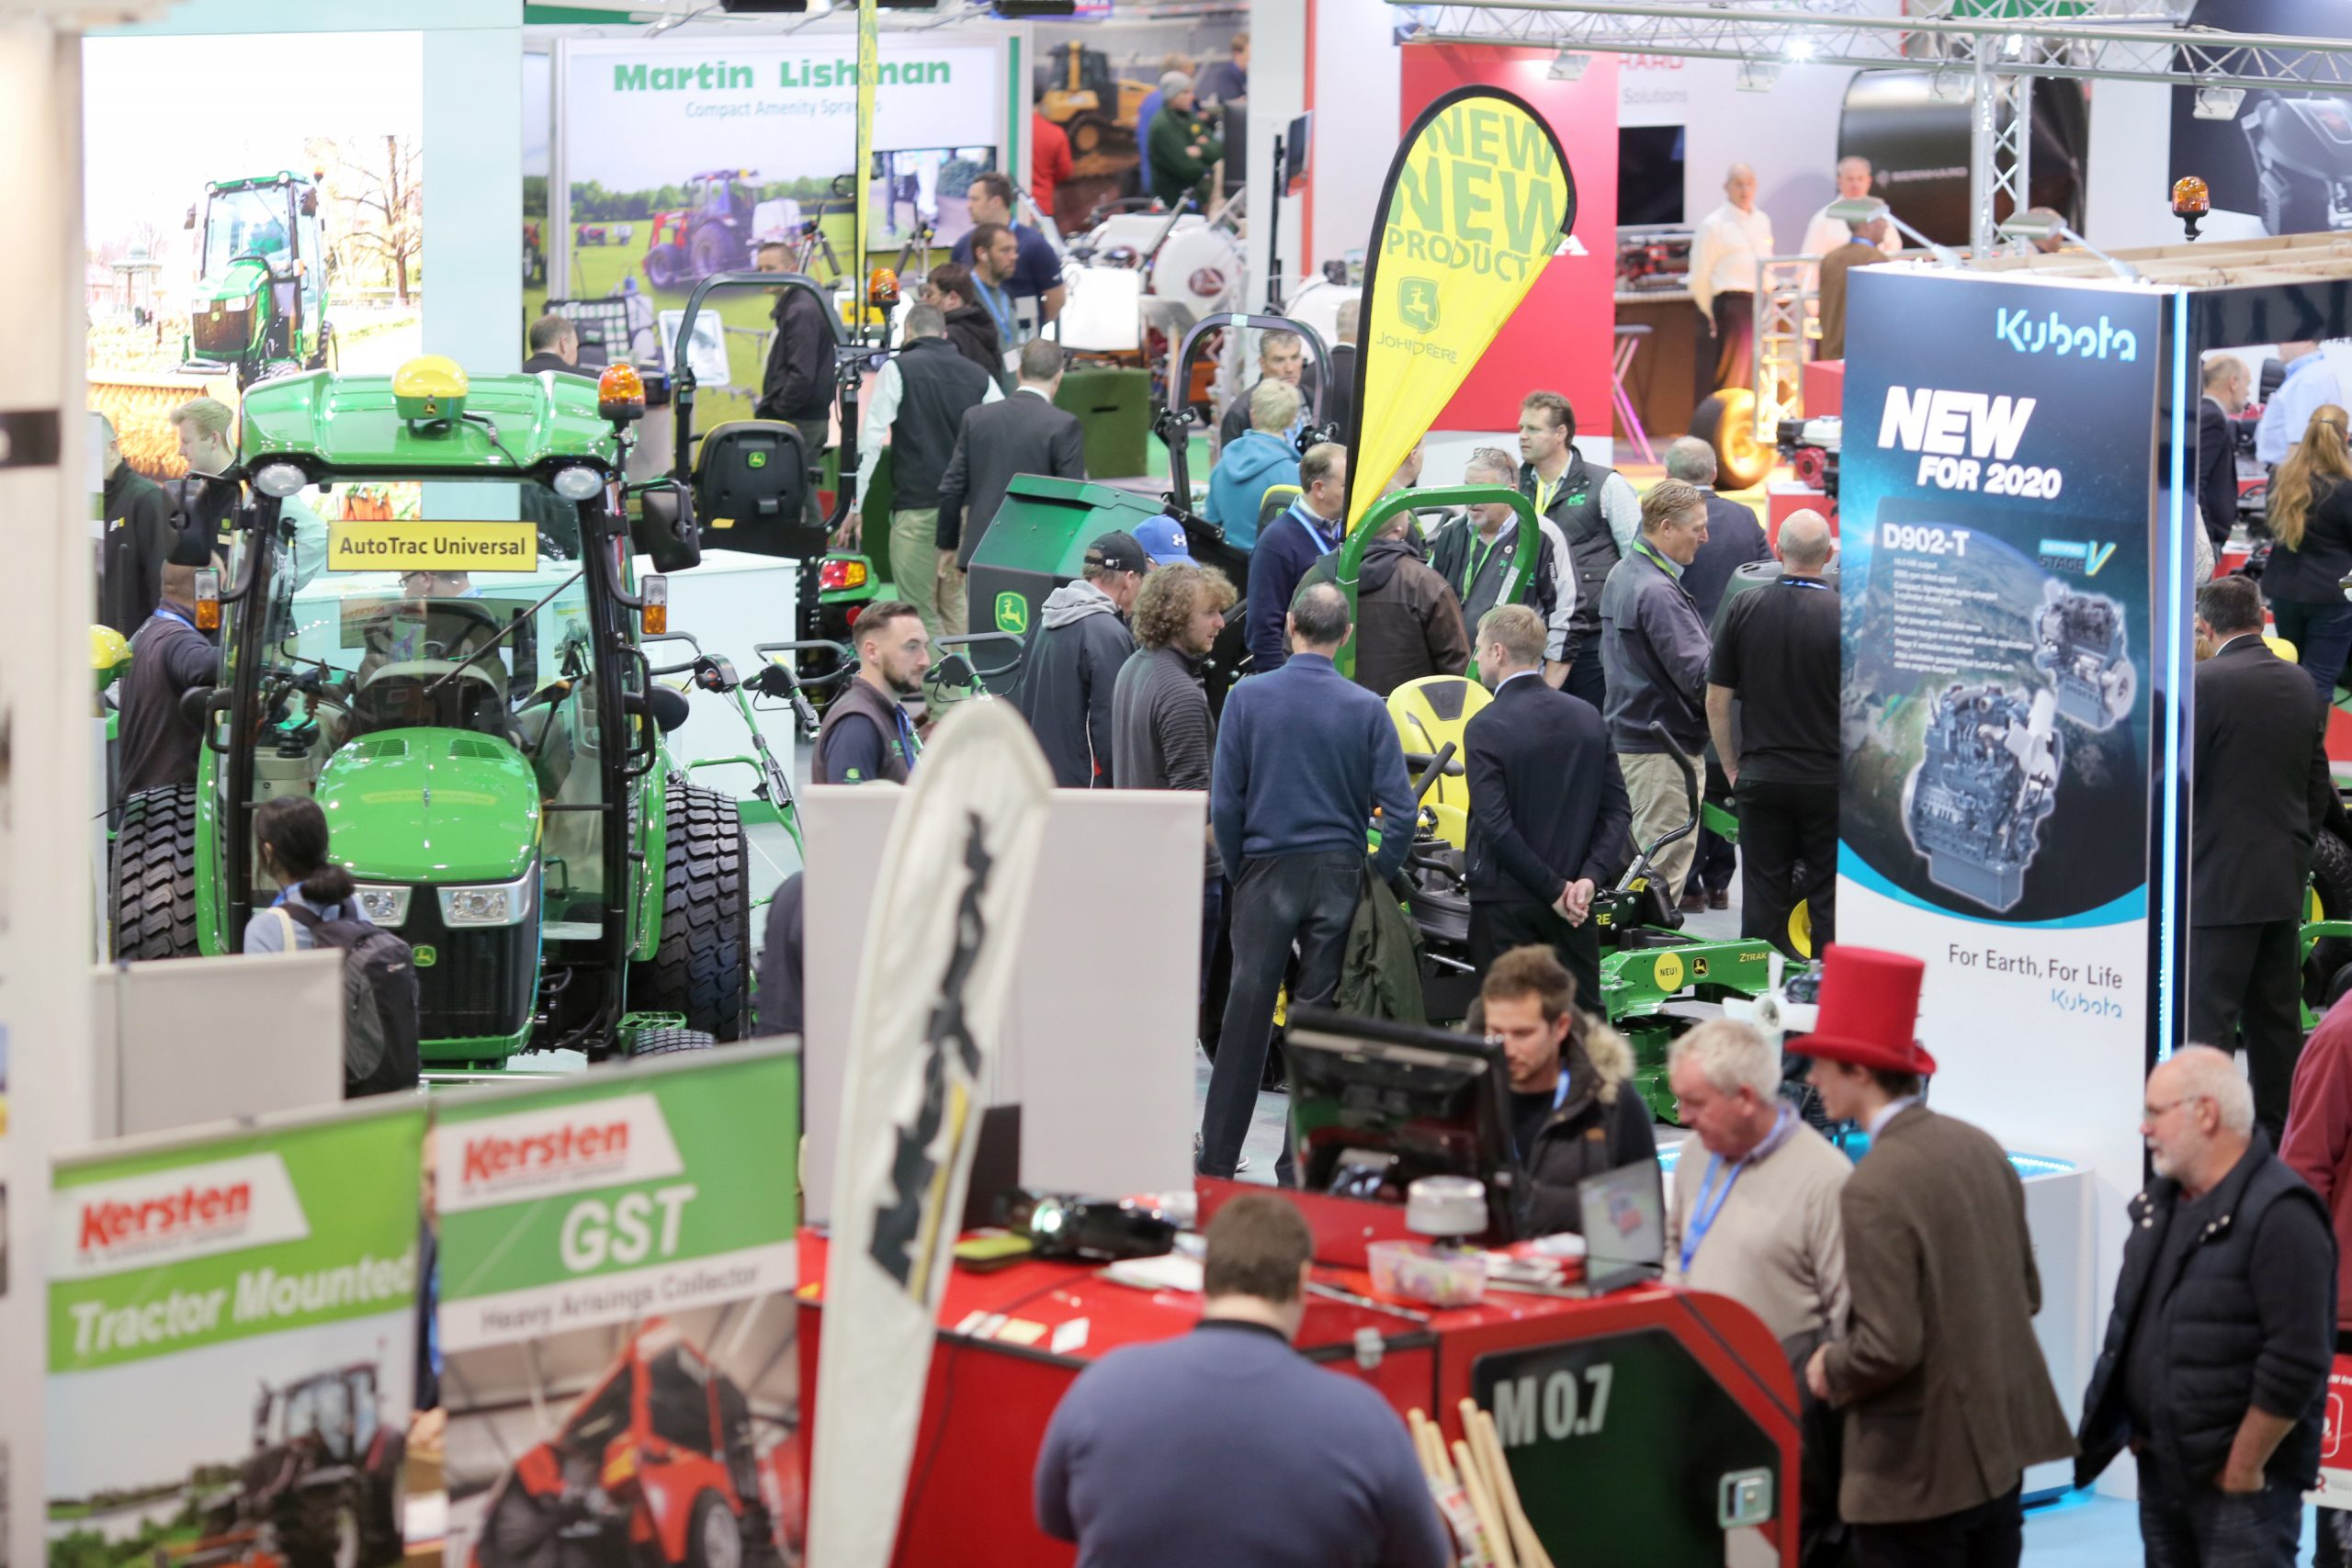 Trade shows reopen for business. Here are some top tips to make the most of your visit